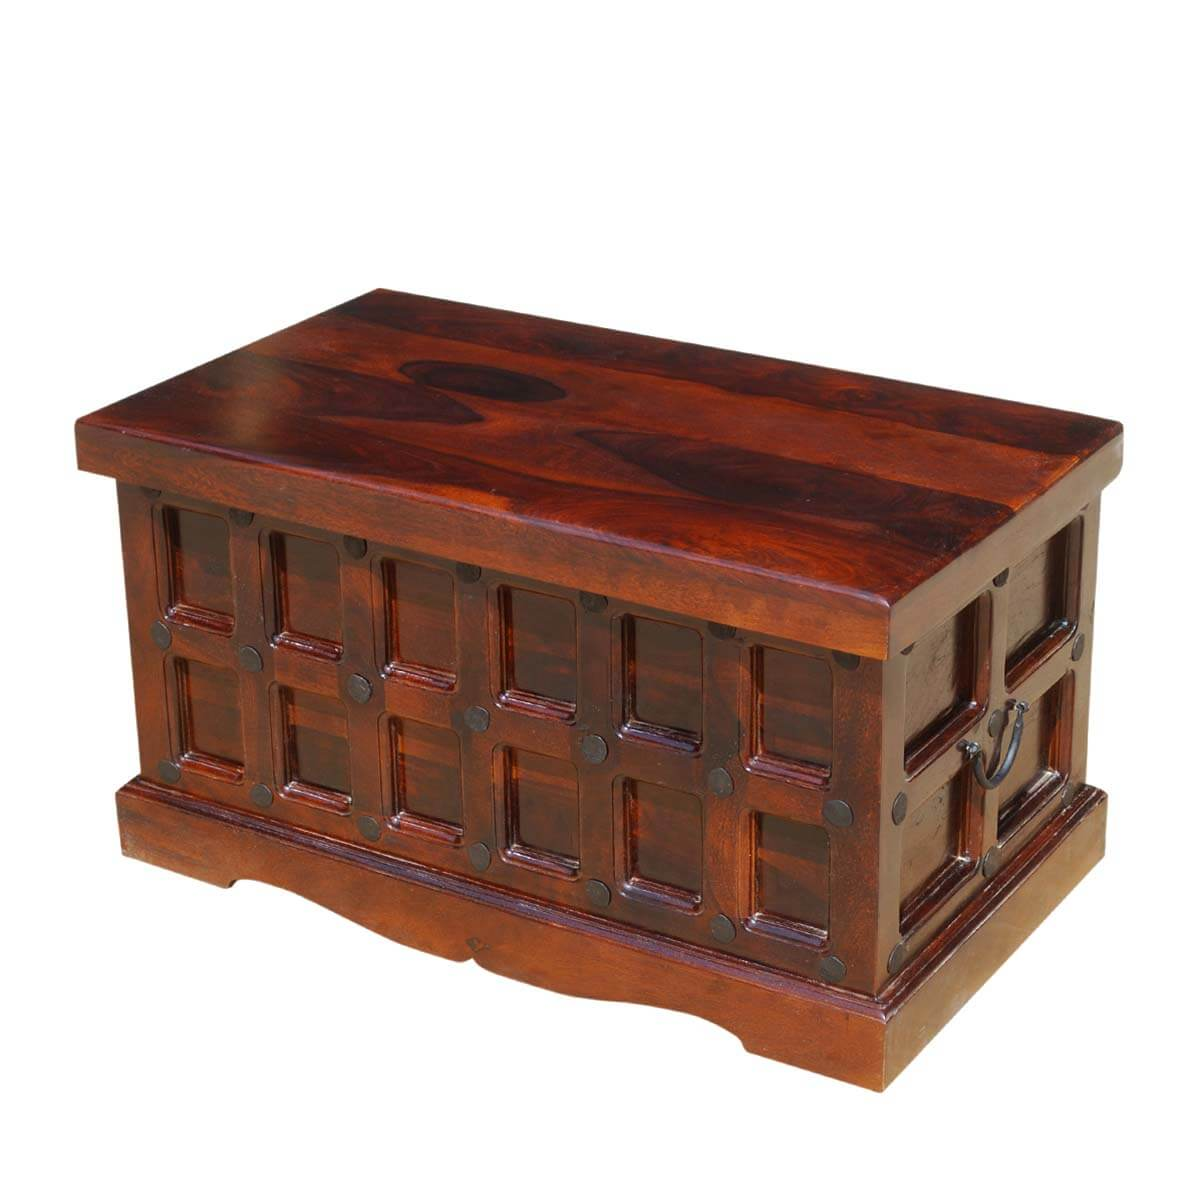 Solid Wood Trunk Coffee Table Blanket Storage Chest